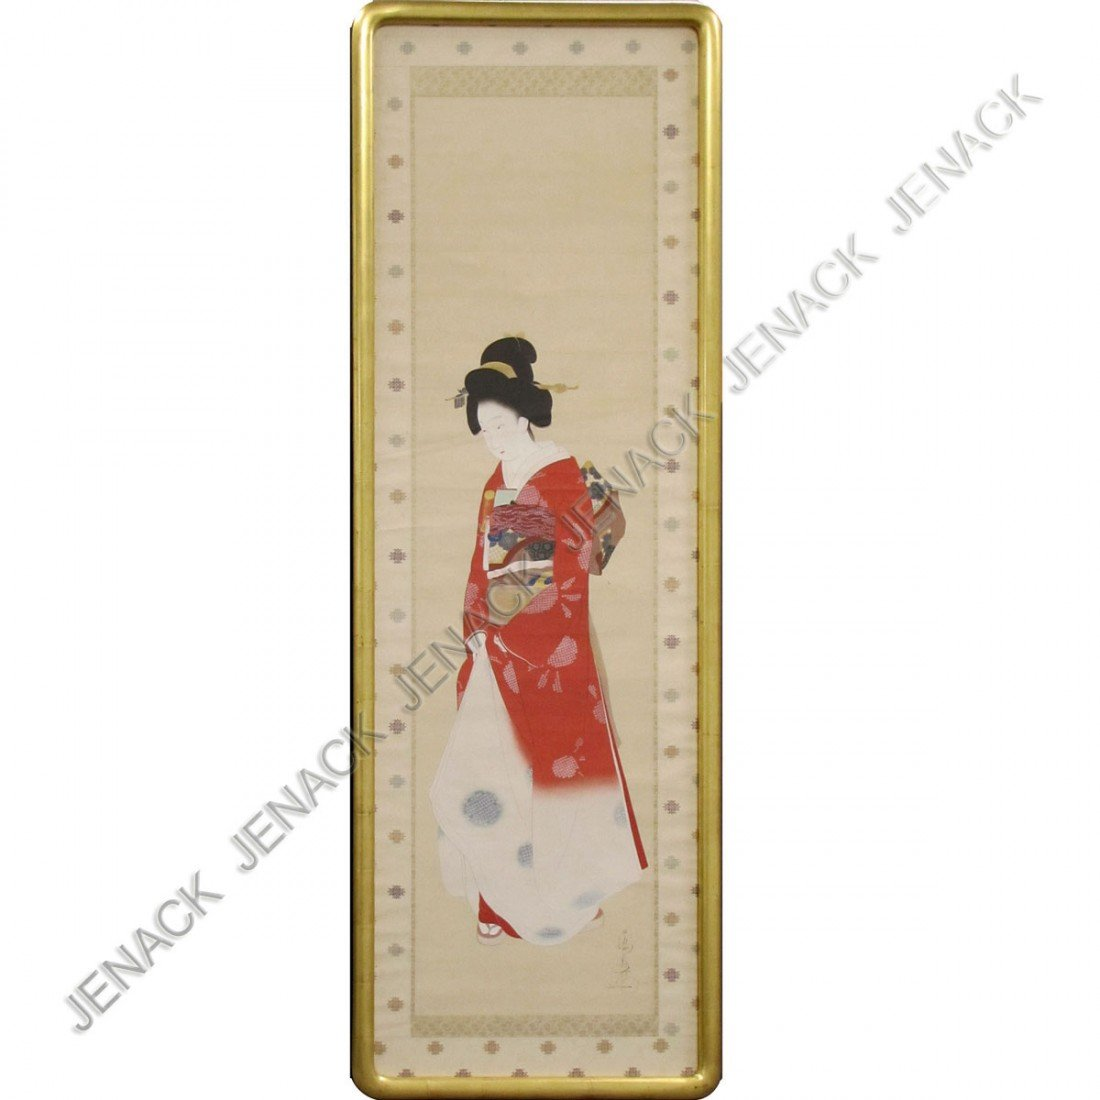 91: JAPANESE WATERCOLOR SCROLL PAINTING, GEISHA, SIGN